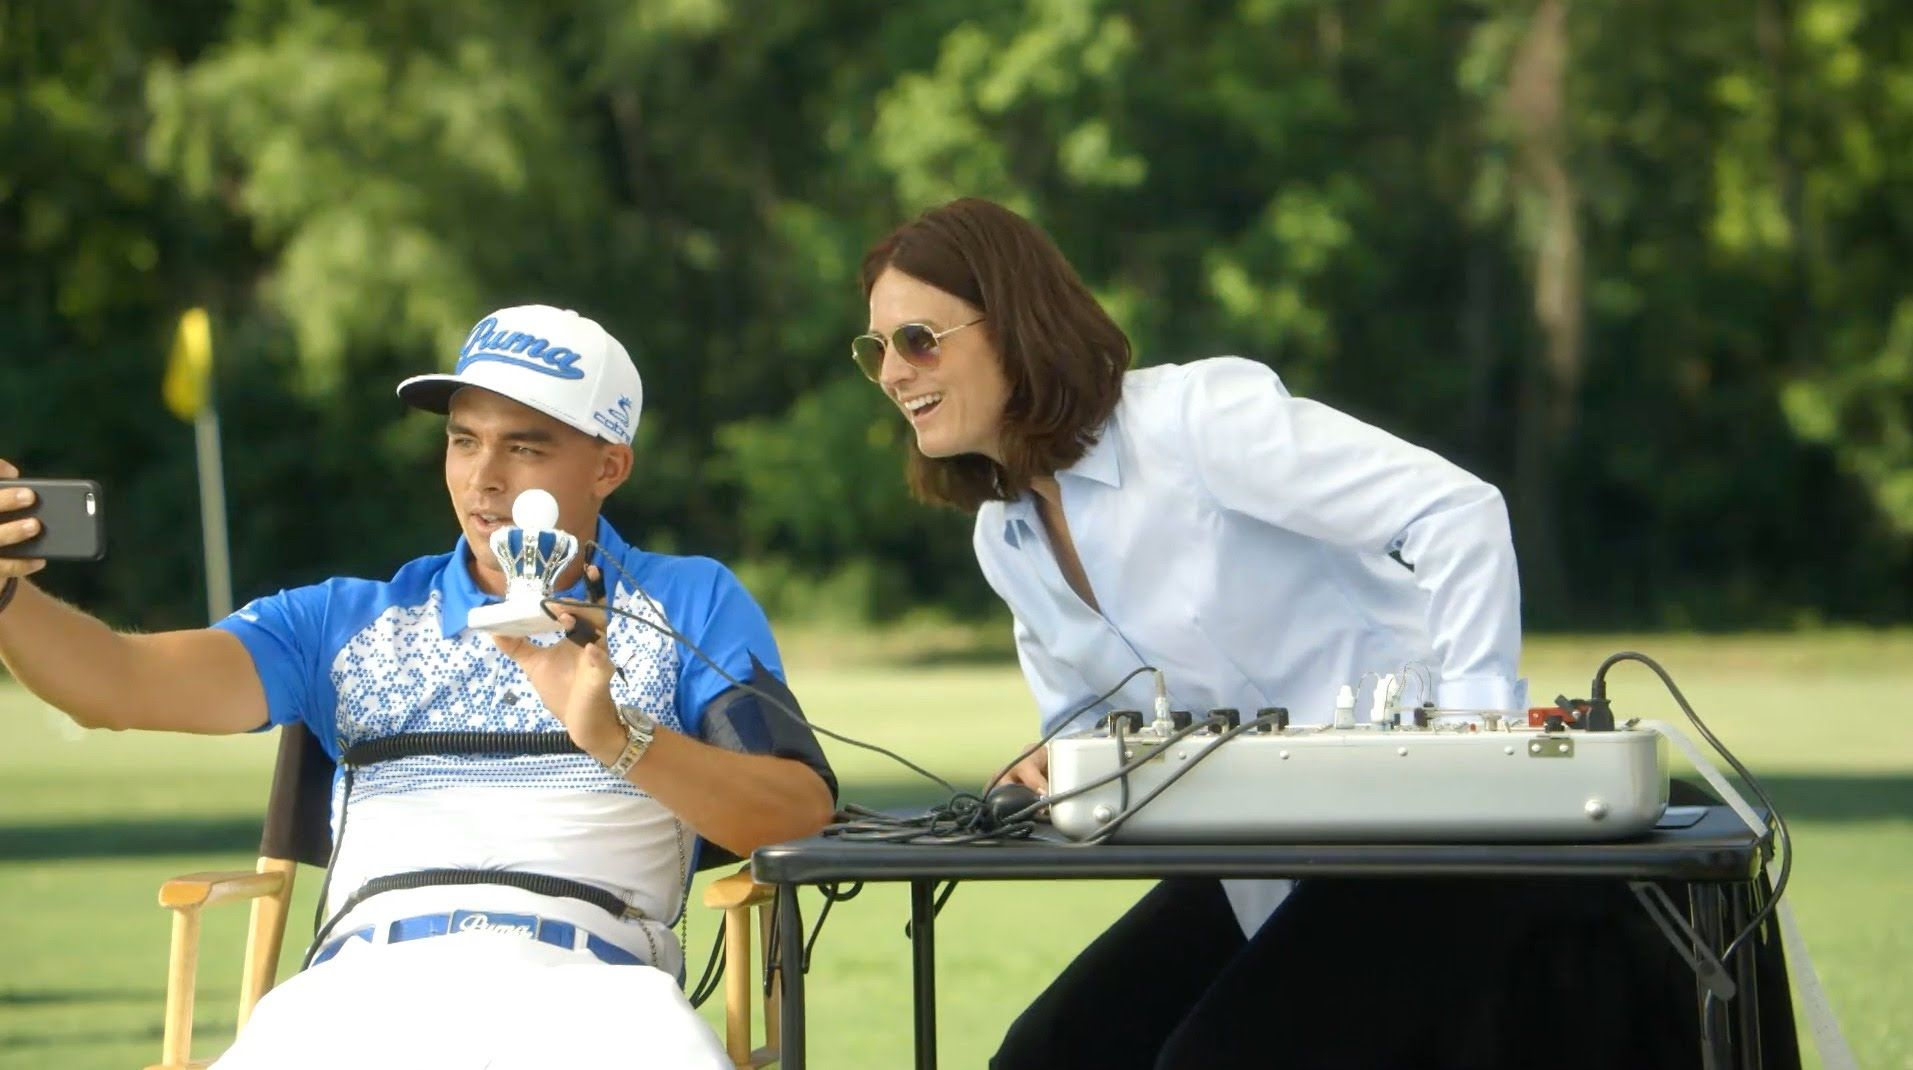 Golf Love Tests All Players The Big One Love test